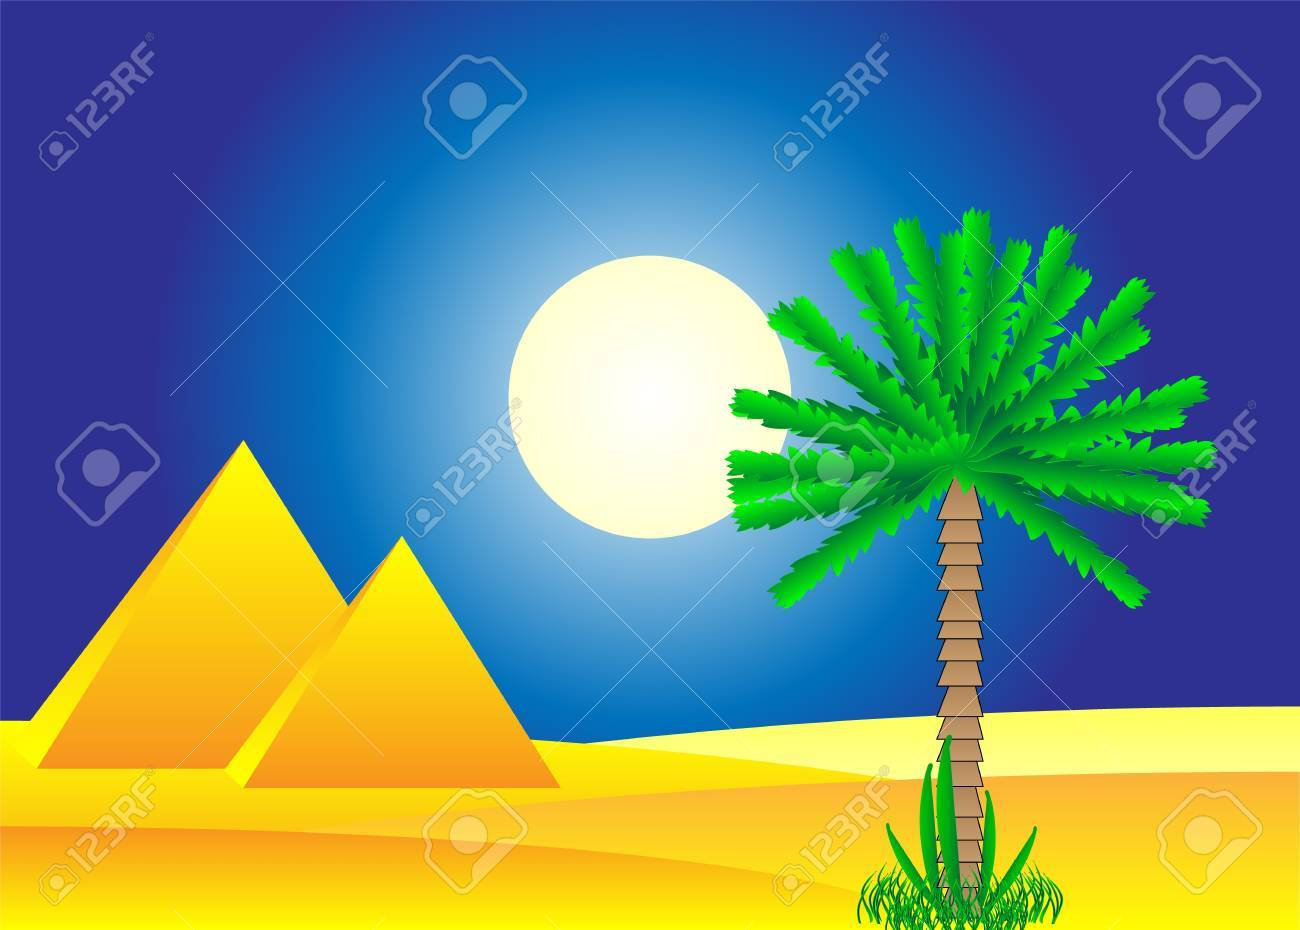 Sahara desert with egyptian pyramids by day - vector illustration. Stock Vector - 11087194